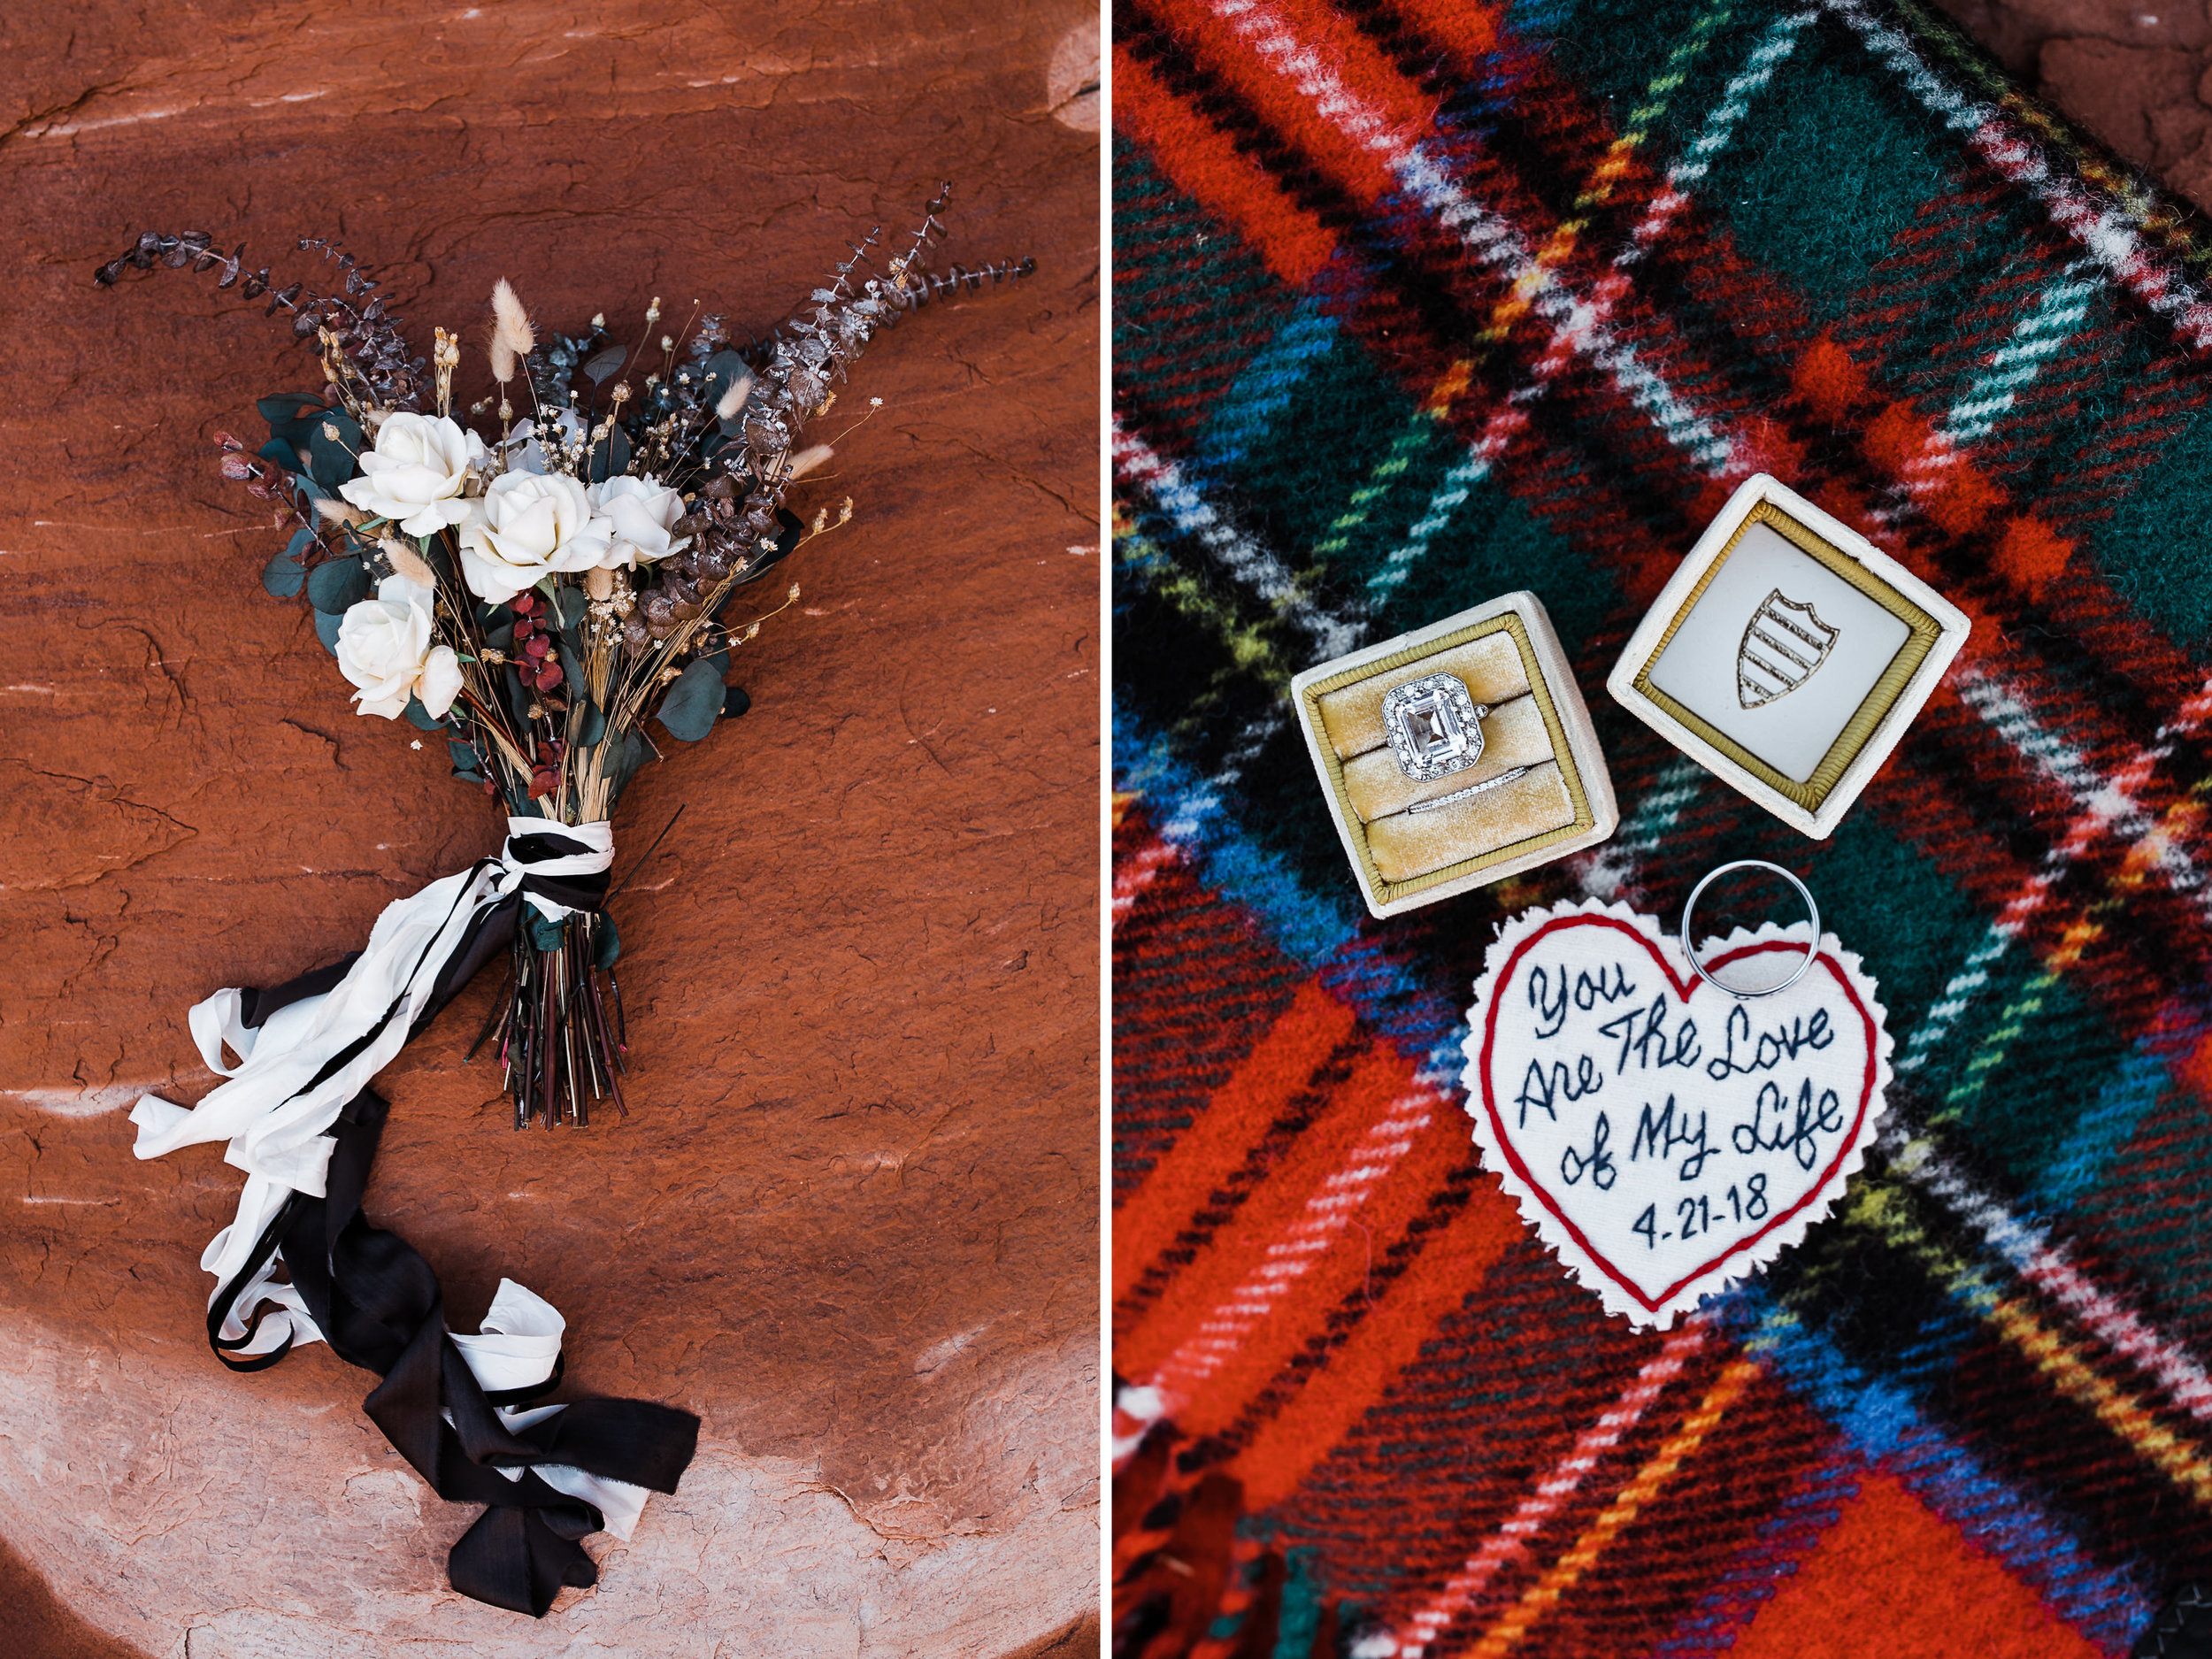 ben + rachelle's elopement in a secret canyon near Moab, Utah | canyonlands national park first look + portraits | secret ceremony on the edge of a cliff | moab adventure wedding photographer